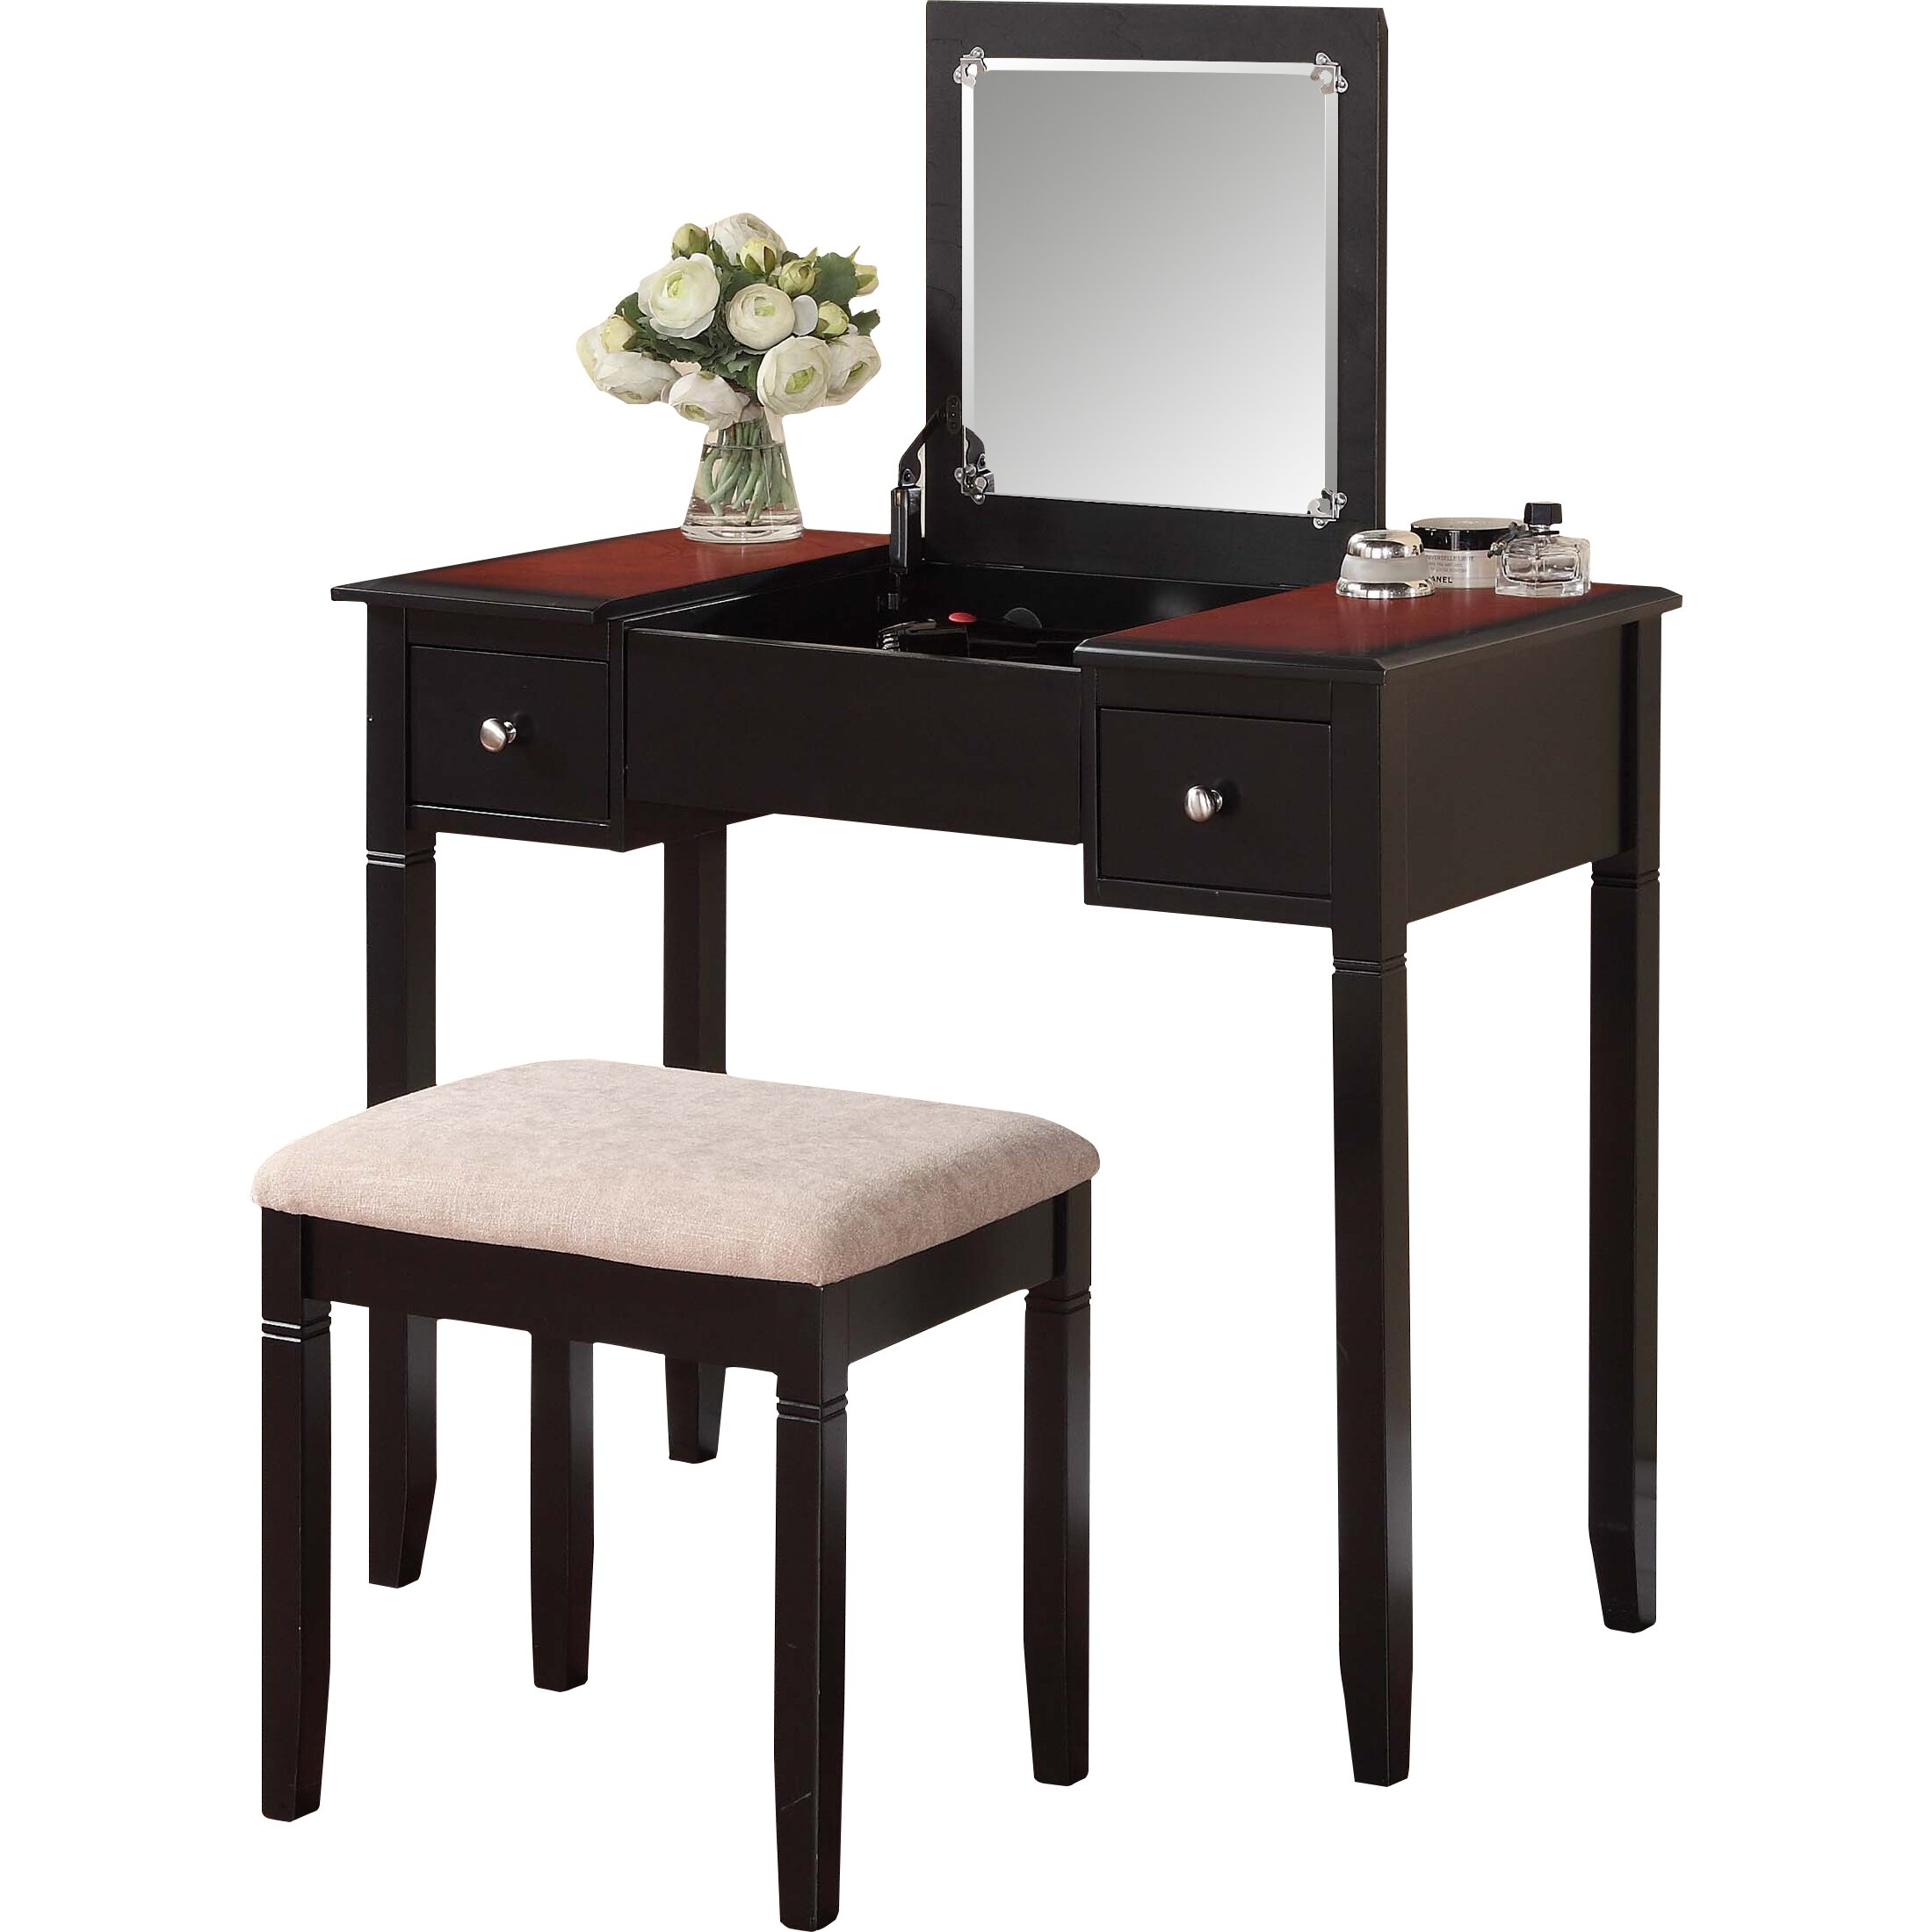 Linon Jackson Vanity Set With Mirror Reviews: Linon Camden Vanity Set With Mirror & Reviews